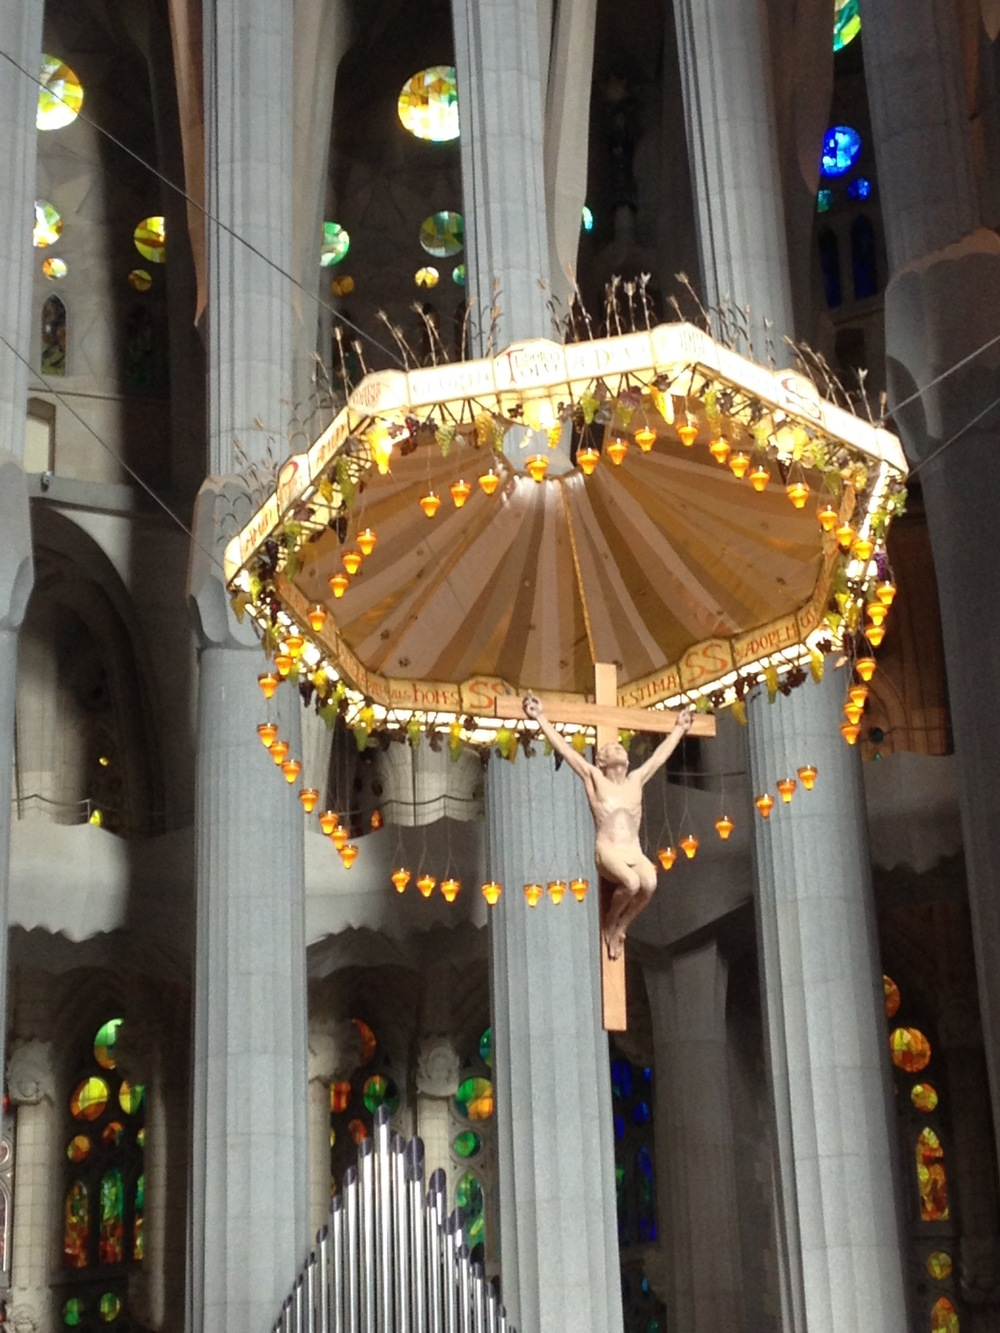 Inside Gaudi's trippy La Sagrada Familia with Jesus flying in on a grape covered parachute over the altar.